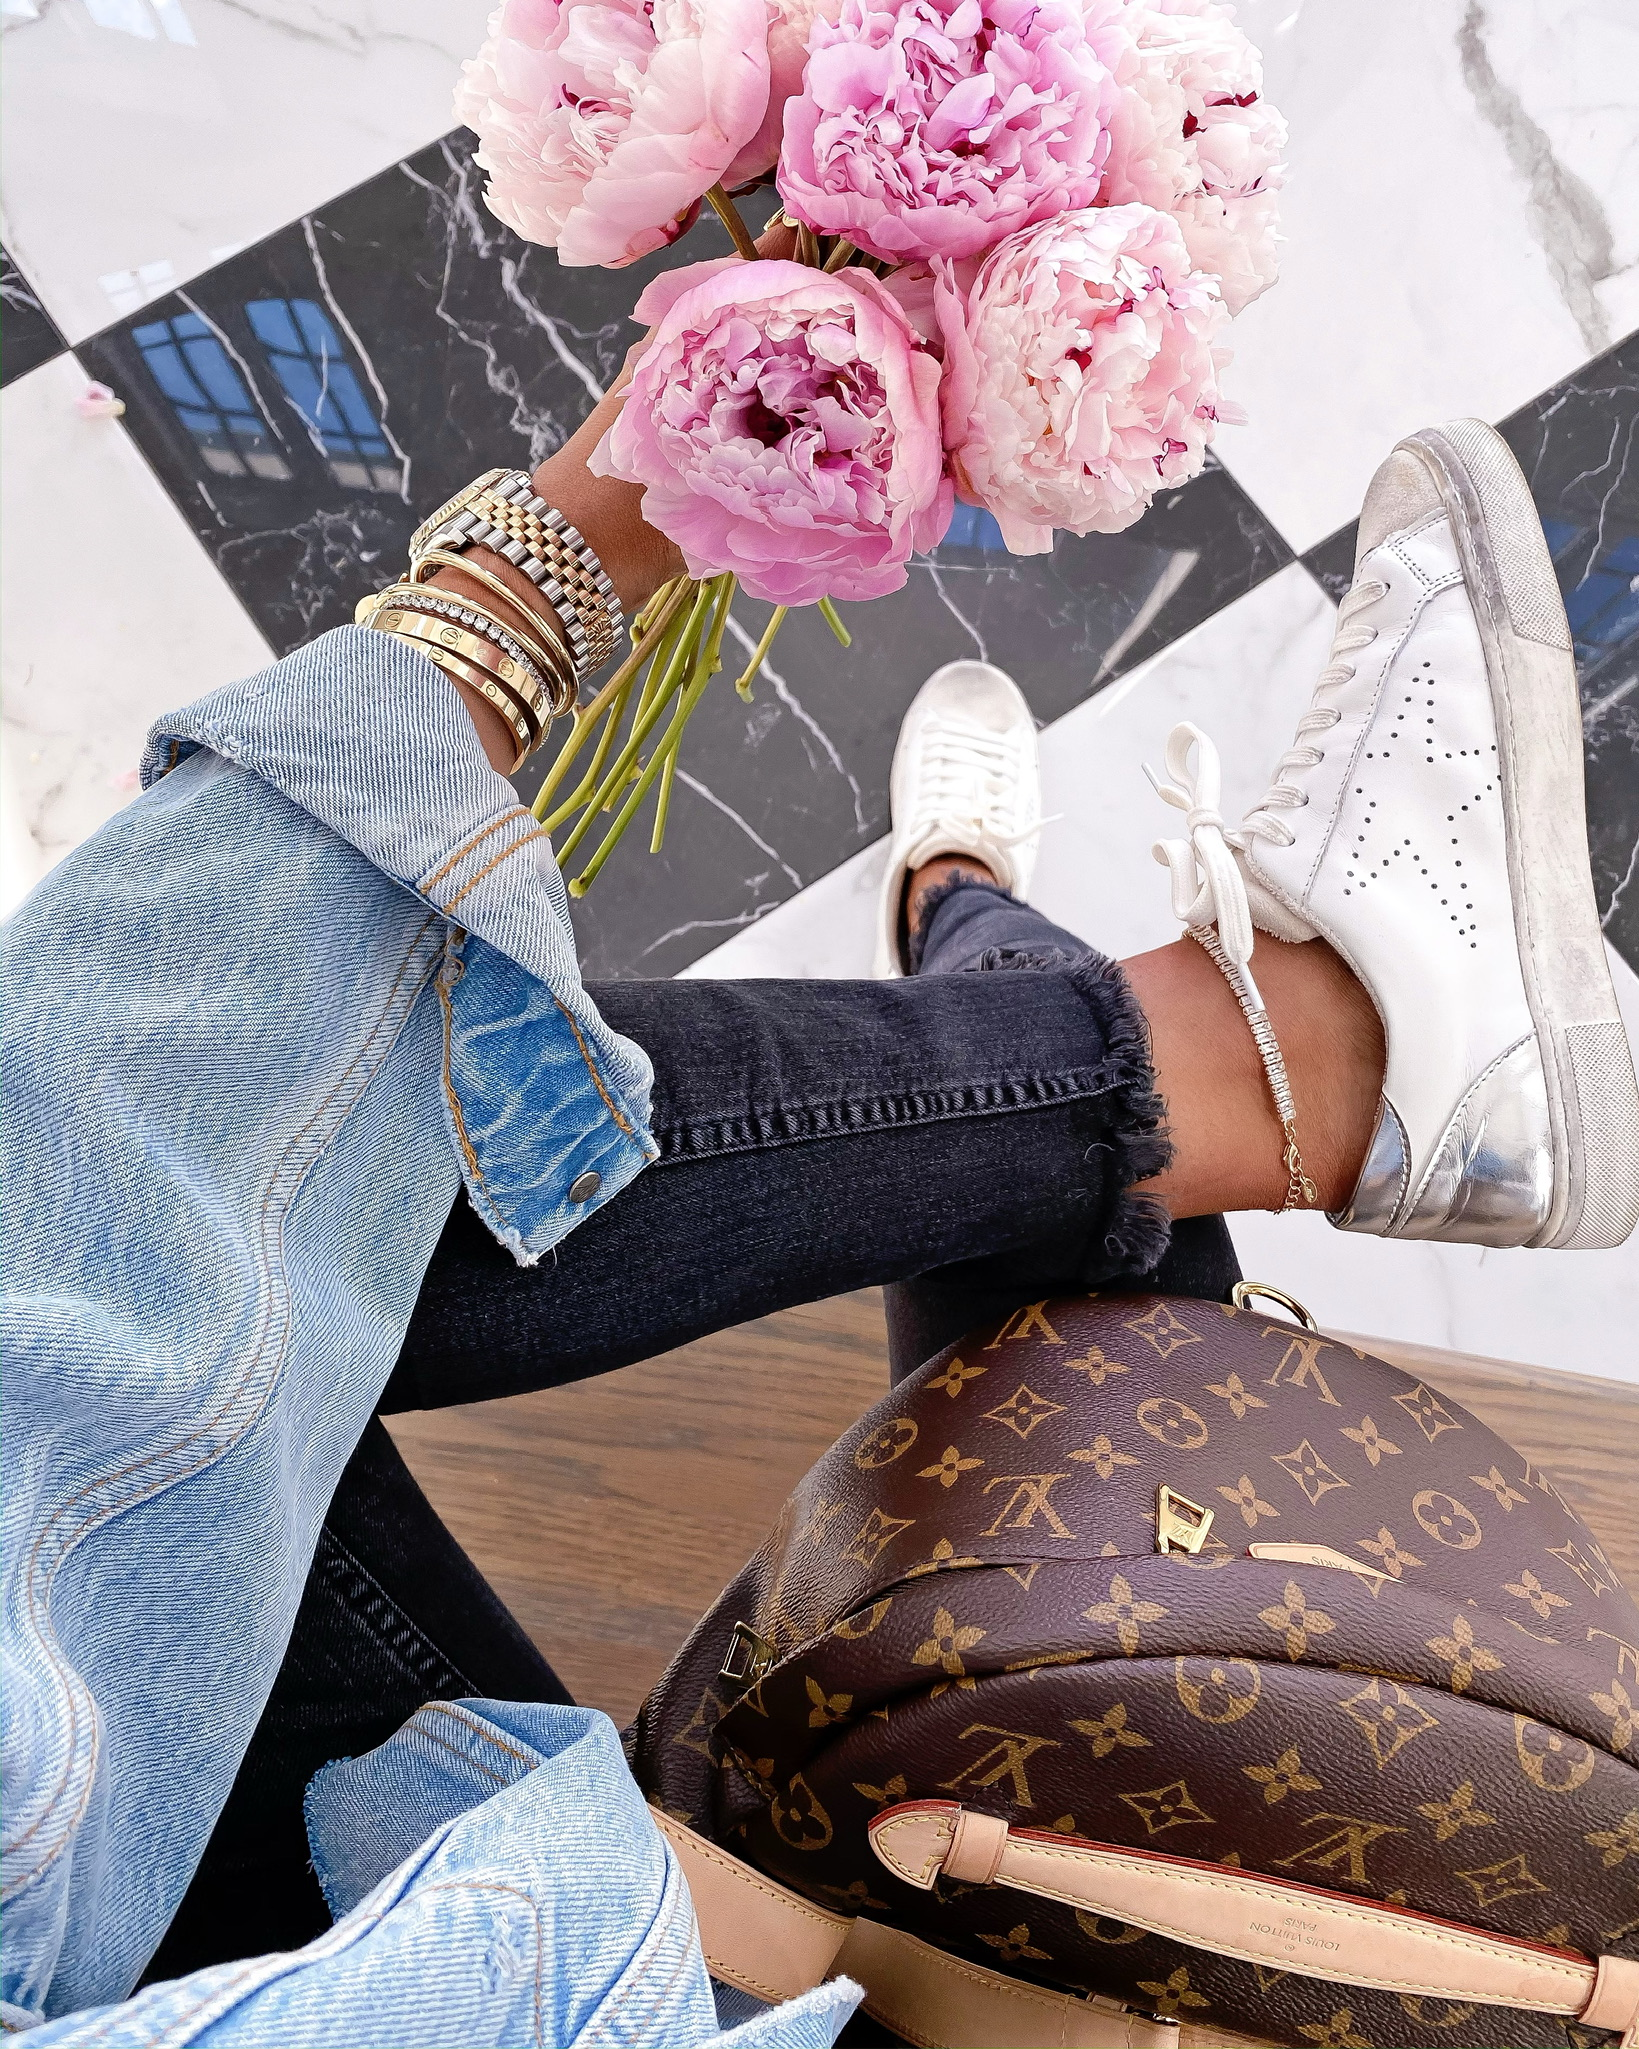 Instagram Recap by popular US lifestyle blog, The Sweetest Thing: image of Emily Gemma holding a bouquet of Pink Peonies and sitting next to a Louis Vuitton bumbag and wearing a Steve Madden REZZA WHITE sneaker, Nordstrom Crystal Pavé Chain Anklet ETTIKA, H&M Embrace High Ankle Jeans, Nordstrom Amelia Slouchy Trucker Jacket FREE PEOPLE, Fendi ring, Rolex watch, and Fendi double-logo charm ring.